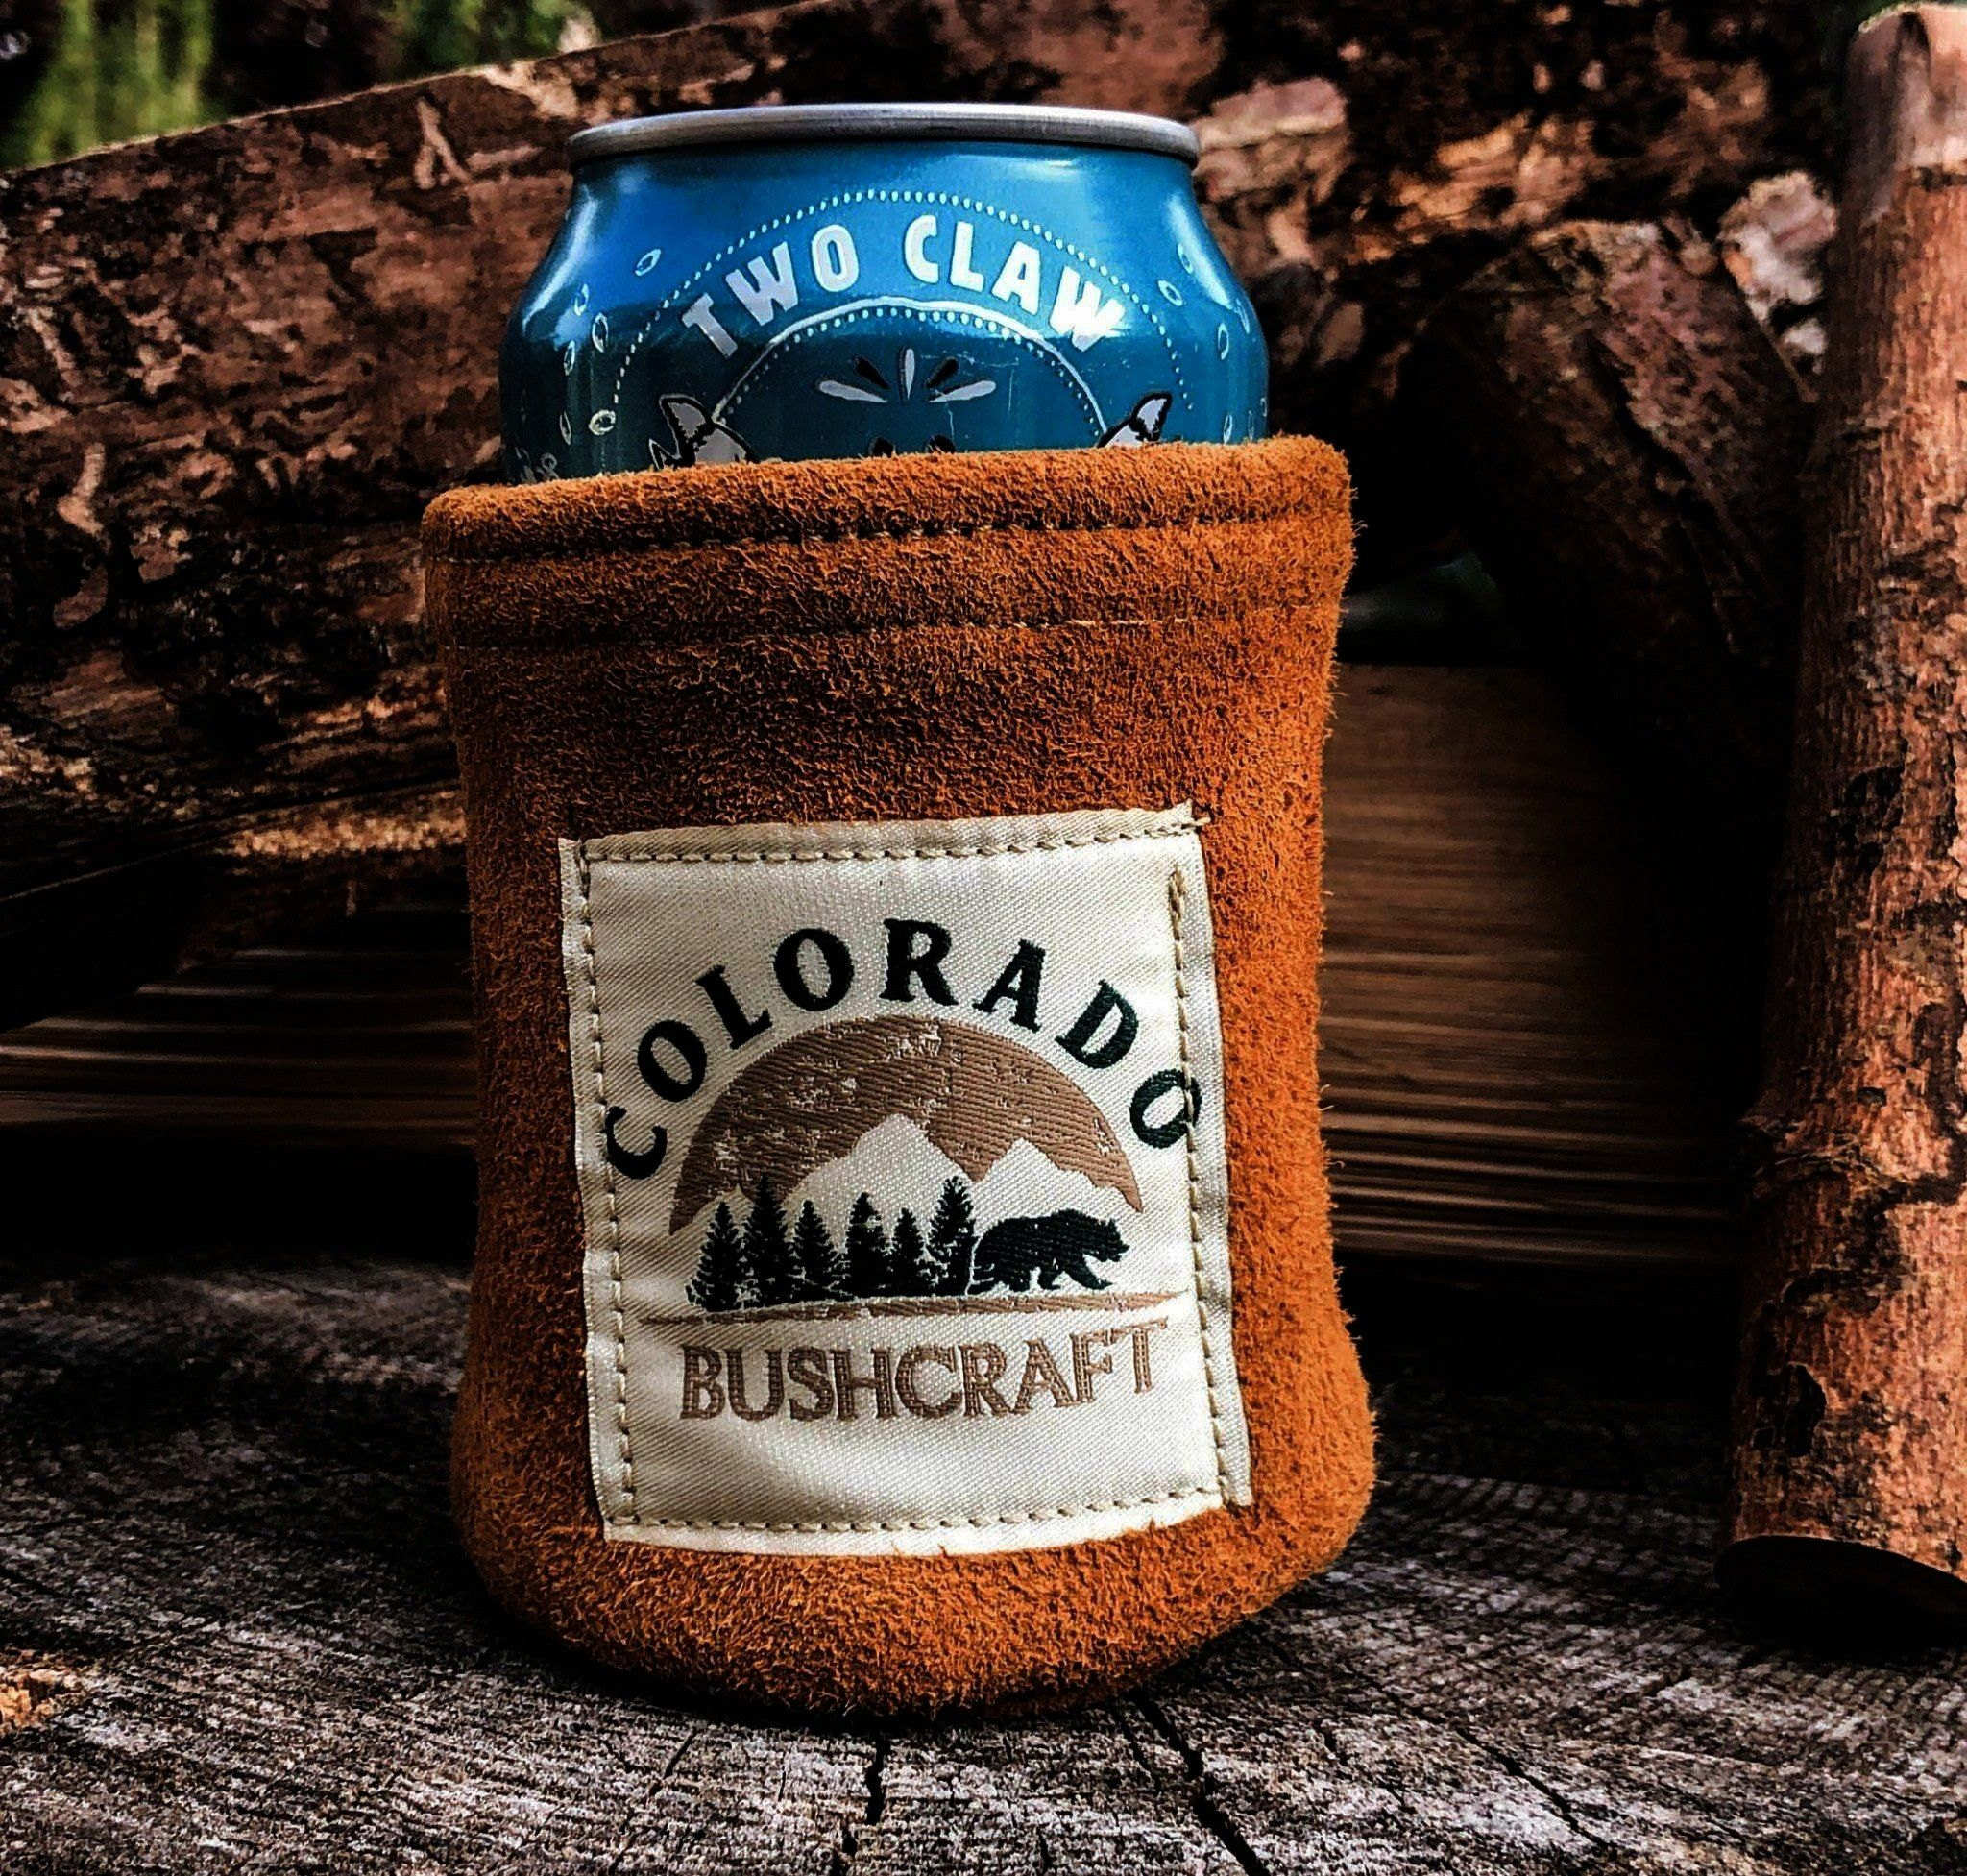 Cosy Cooler Coozie Cozy Wool Insulated Tobacco Bushcraft Deerskin Can Cosy Cooler Coozie Cozy Wool Insulated Tobacco Bushcraft Deerskin Can Cosy Cooler Coozie Cozy Wool I...